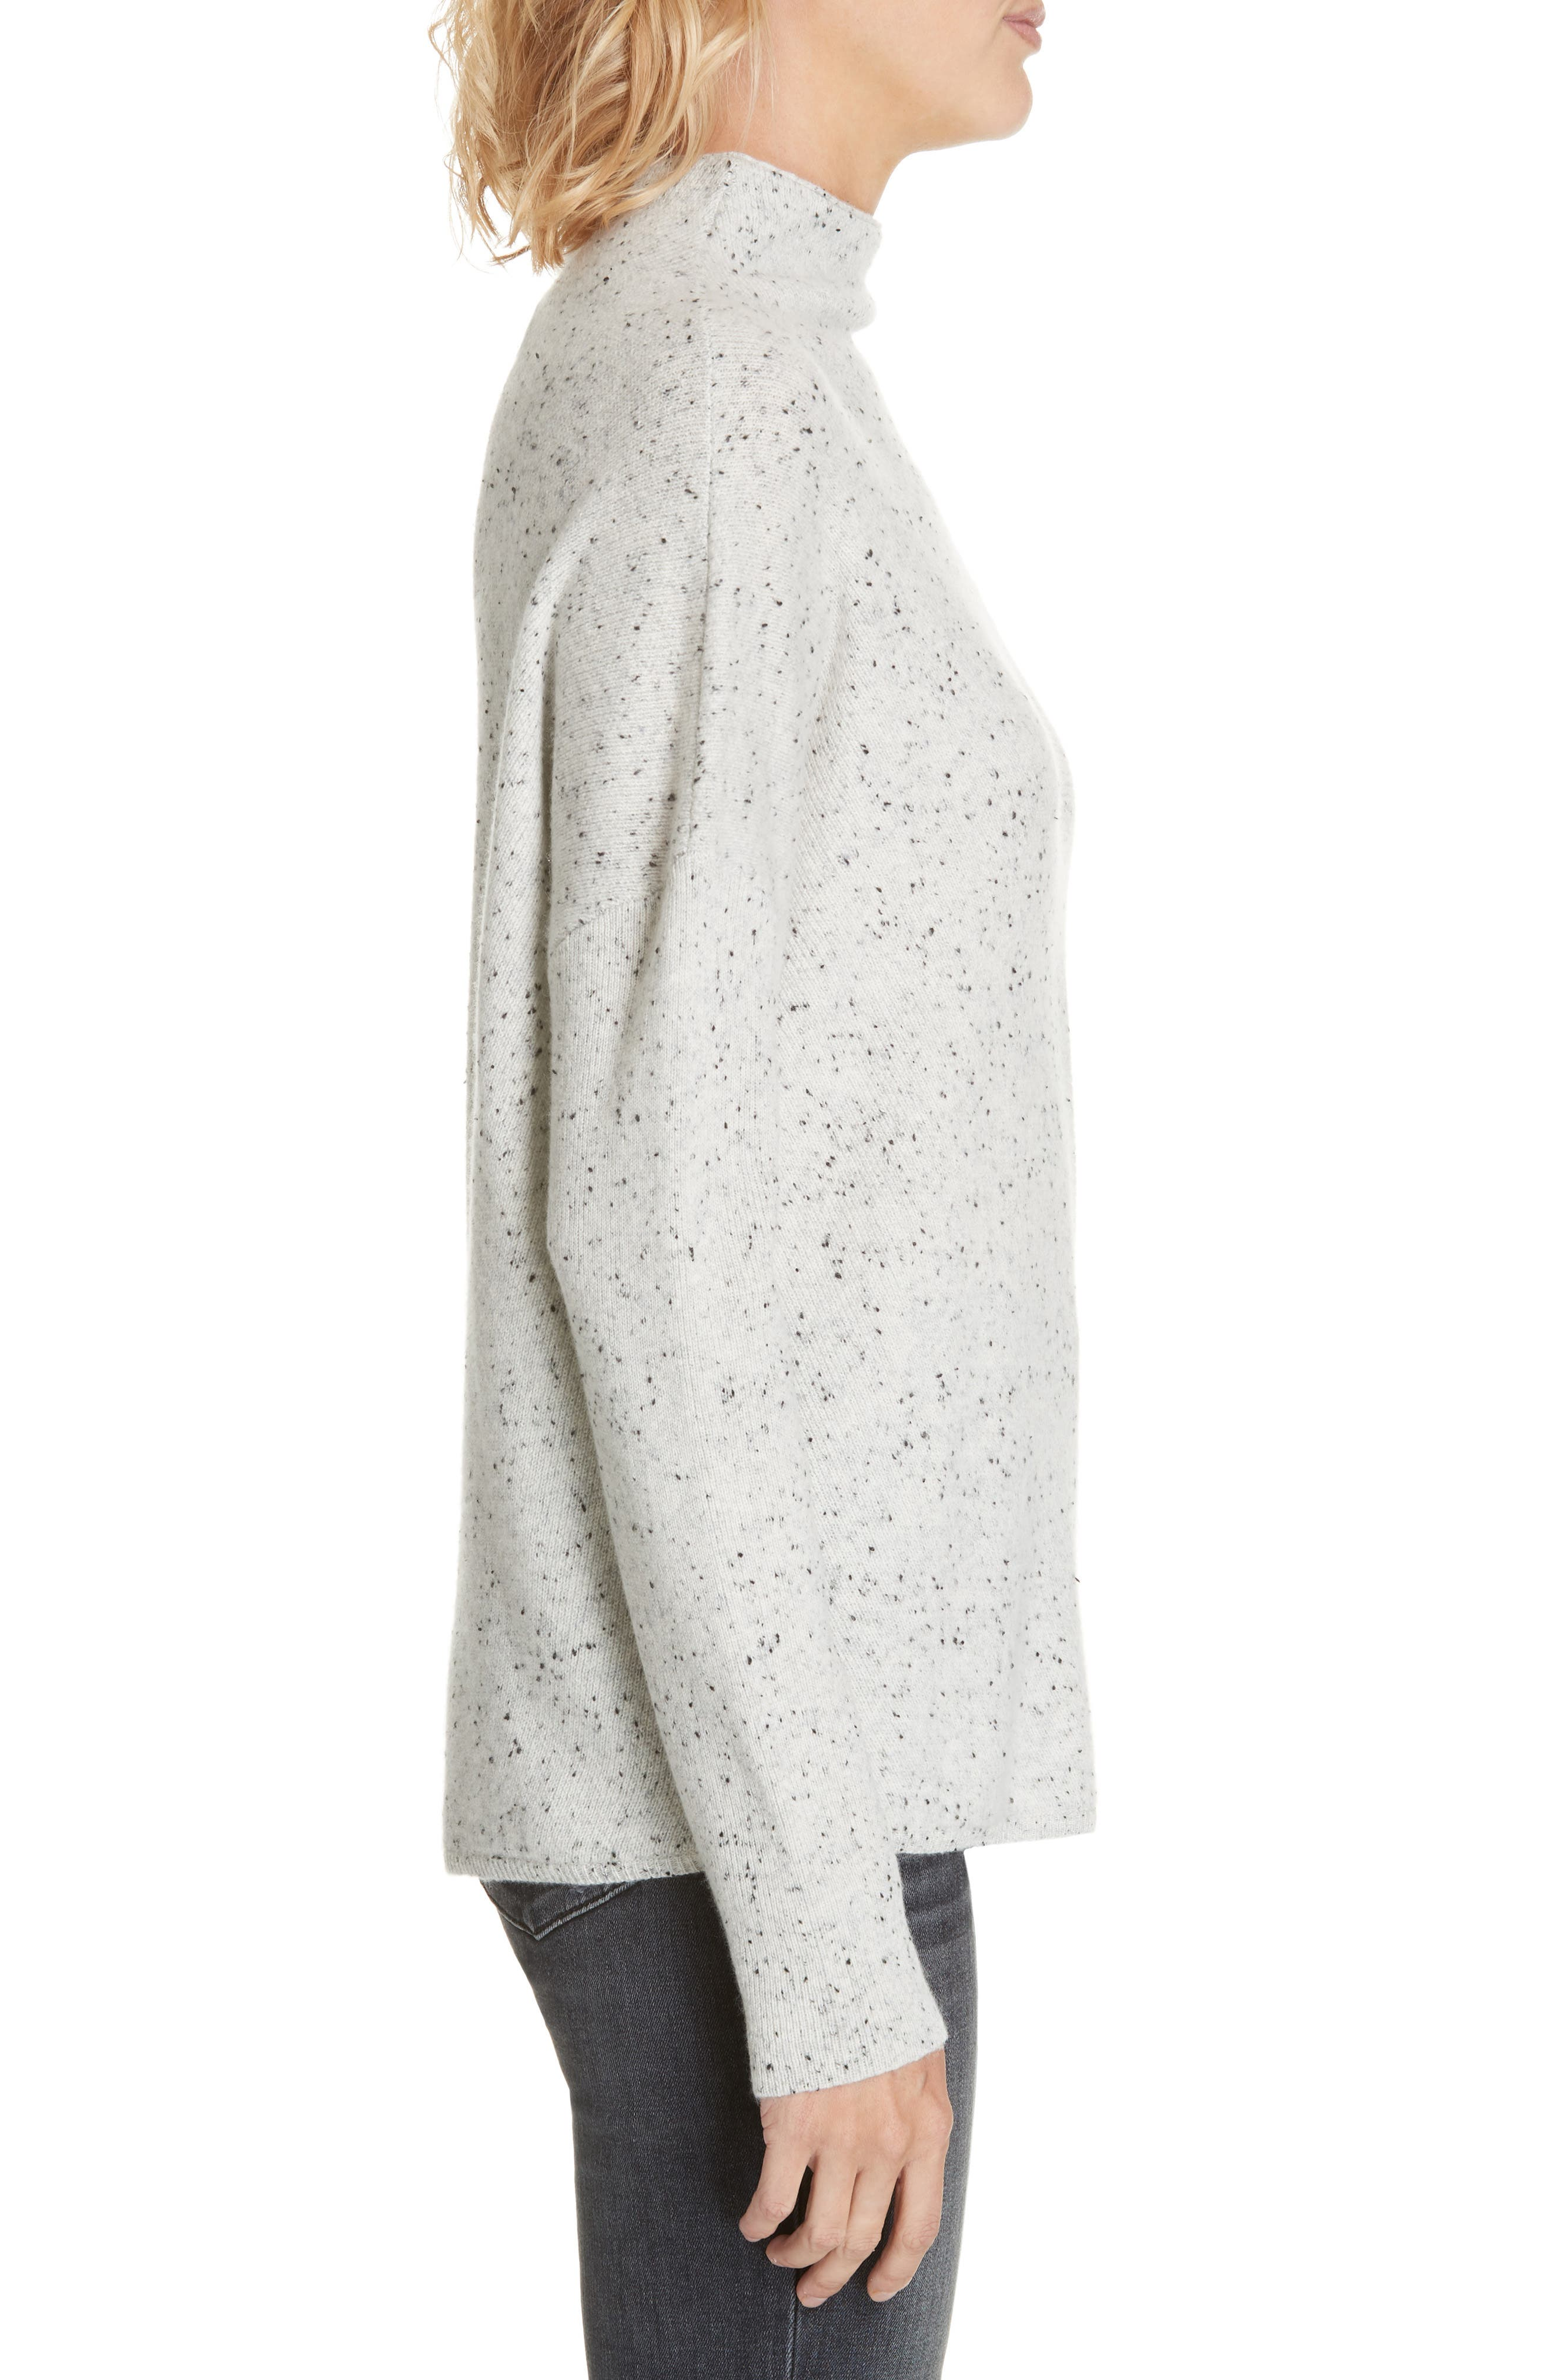 Cashmere Directional Rib Mock Neck Sweater,                             Alternate thumbnail 3, color,                             050